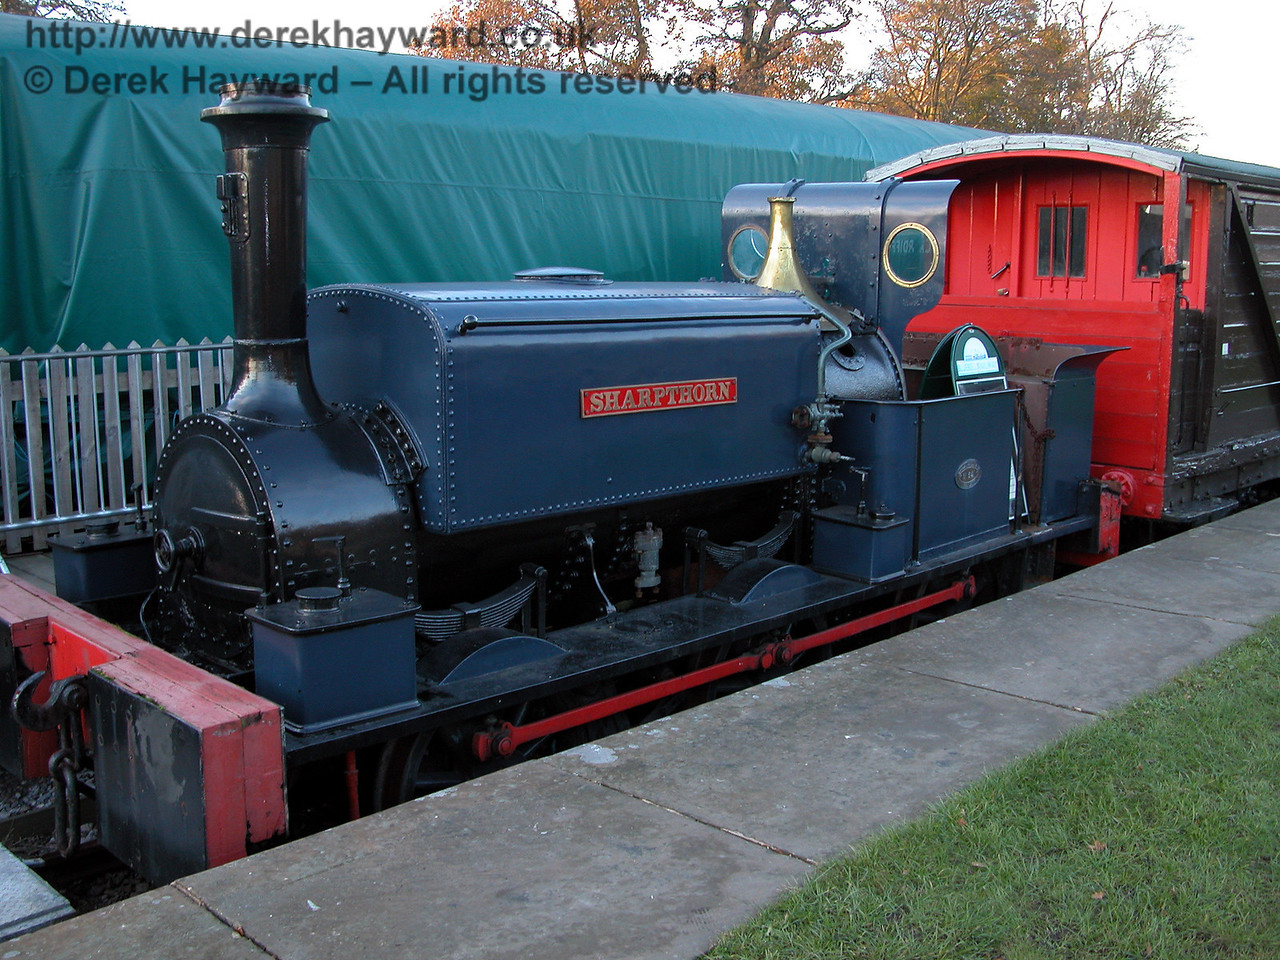 Sharpthorn, used by the contractors J T Firbank to build what is now the Bluebell Railway. Horsted Keynes 19.11.2005